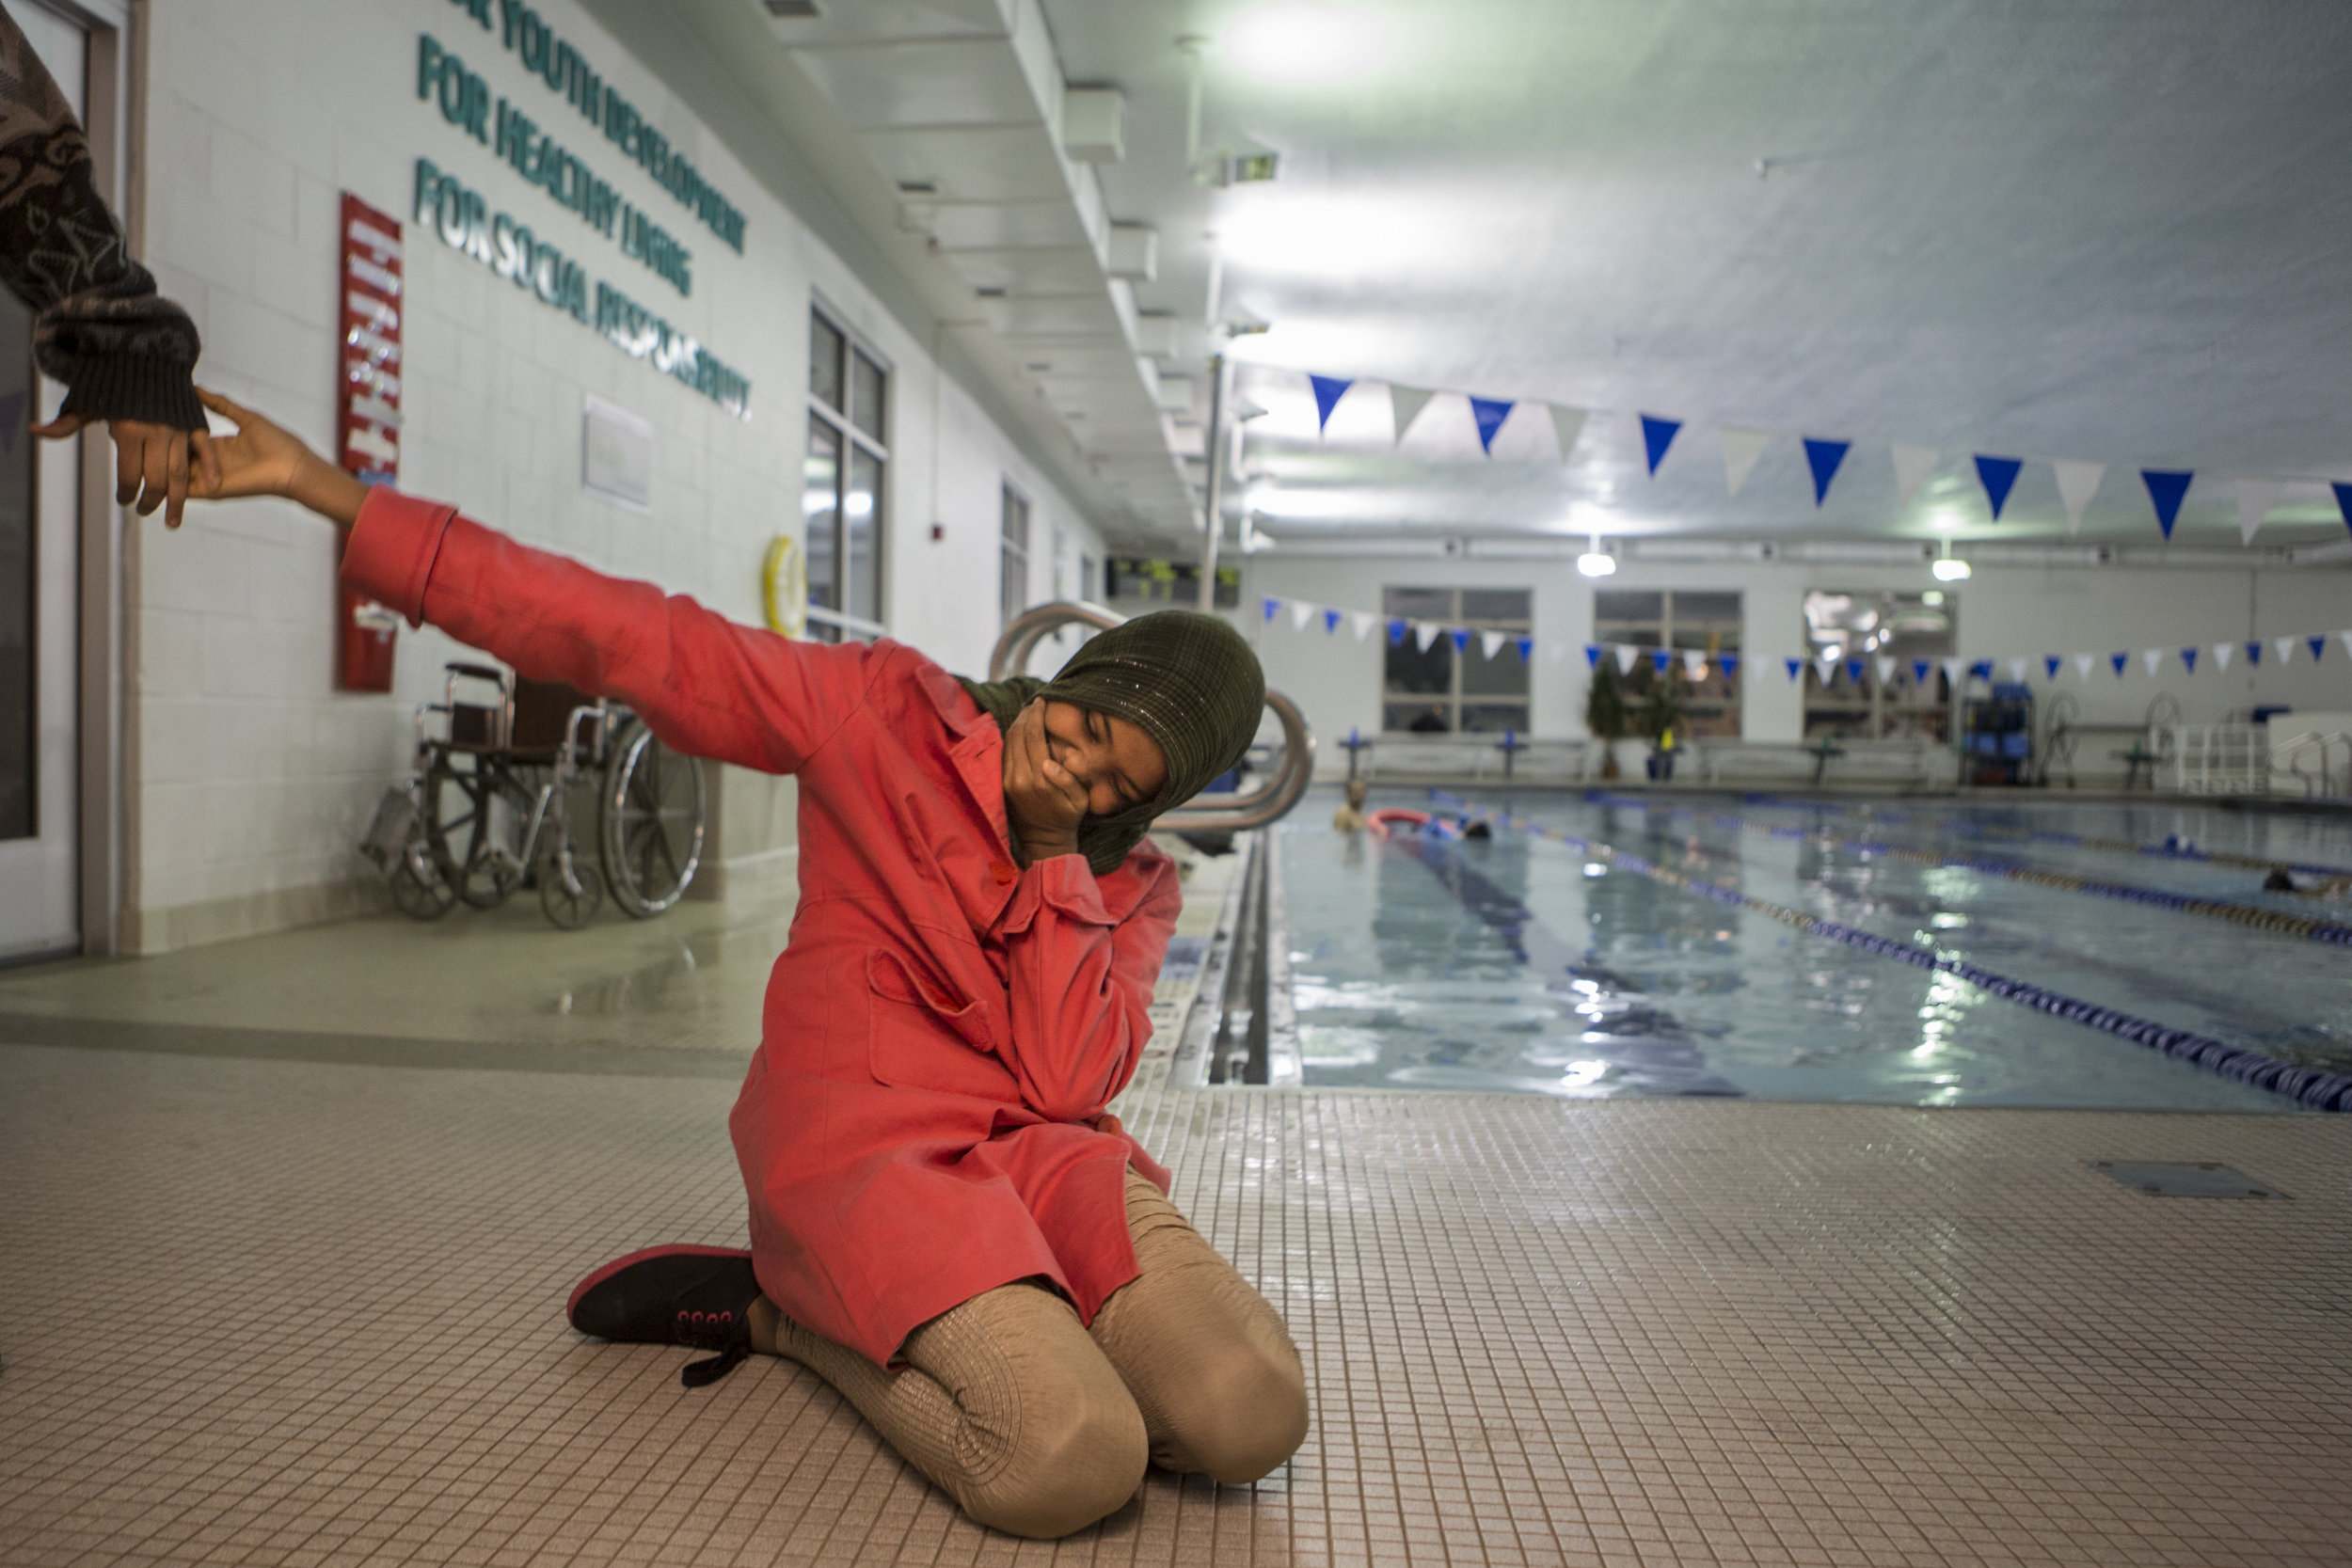 Adna reacts to seeing the community pool at the local YMCA. Apart from drawing, Adna loves swimming and being in the water. After visiting the library, the children visited the YMCA to tour the facilities. Dec 2, 2016.